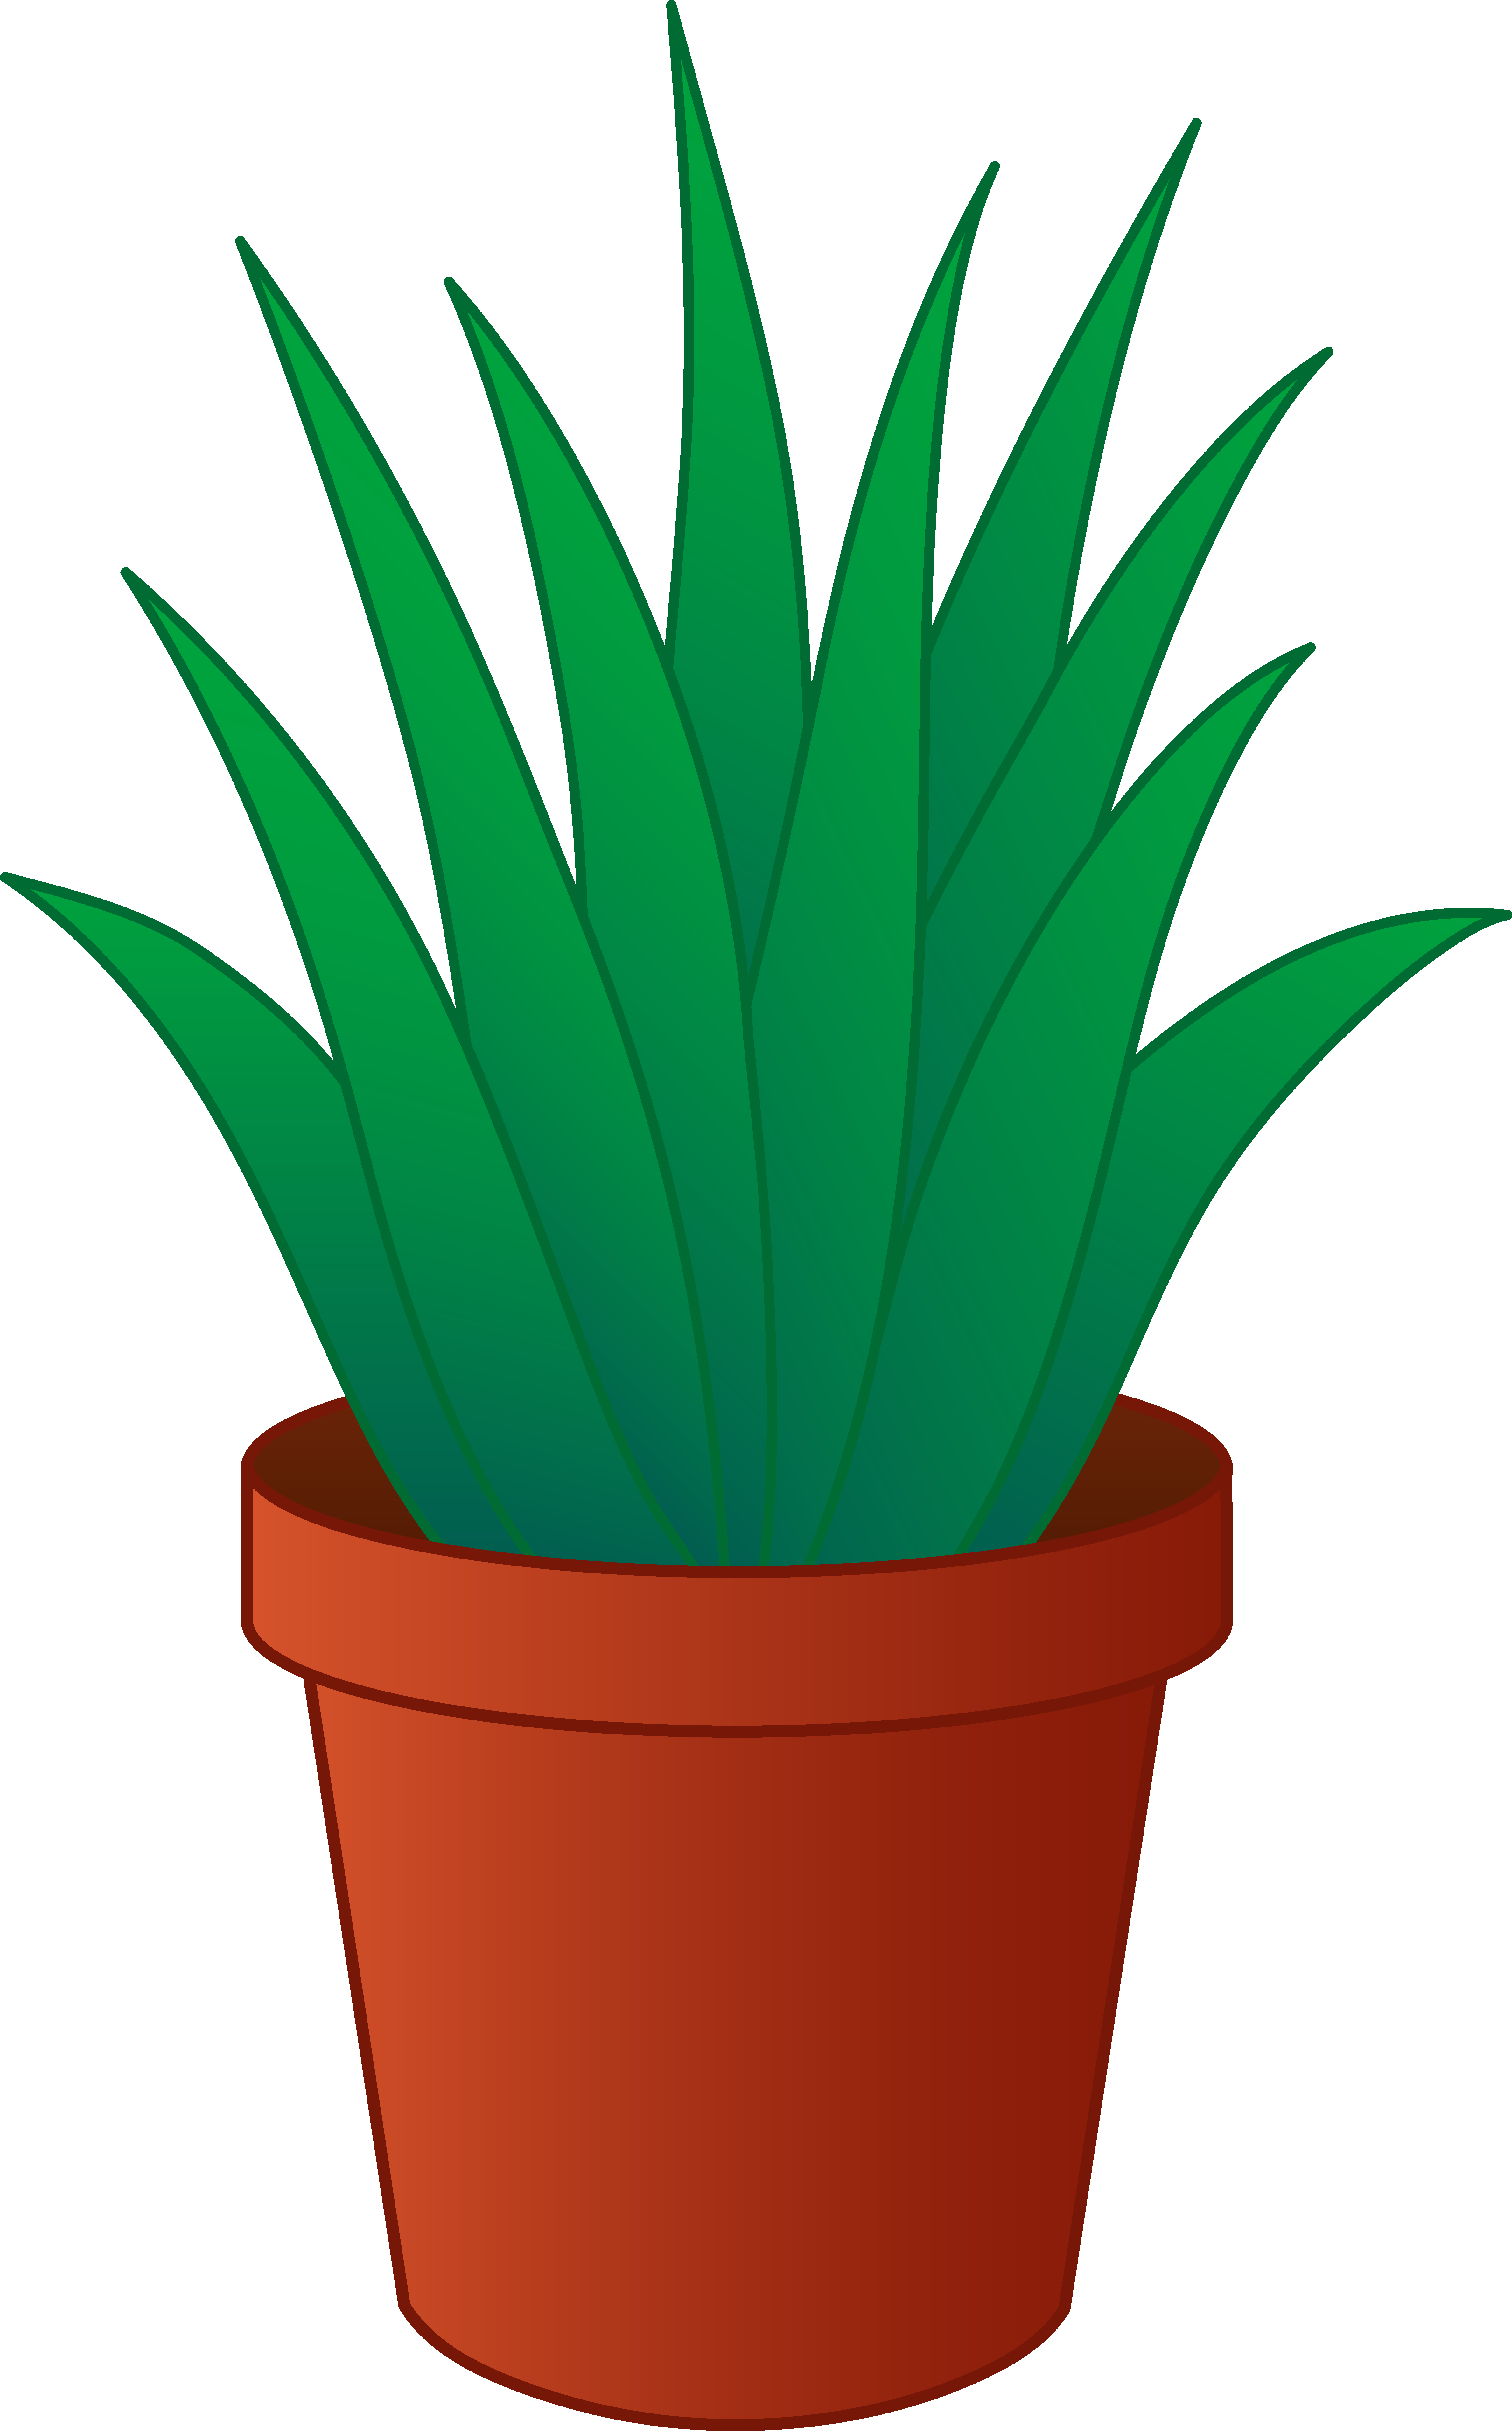 Bush clipart potted. Plant